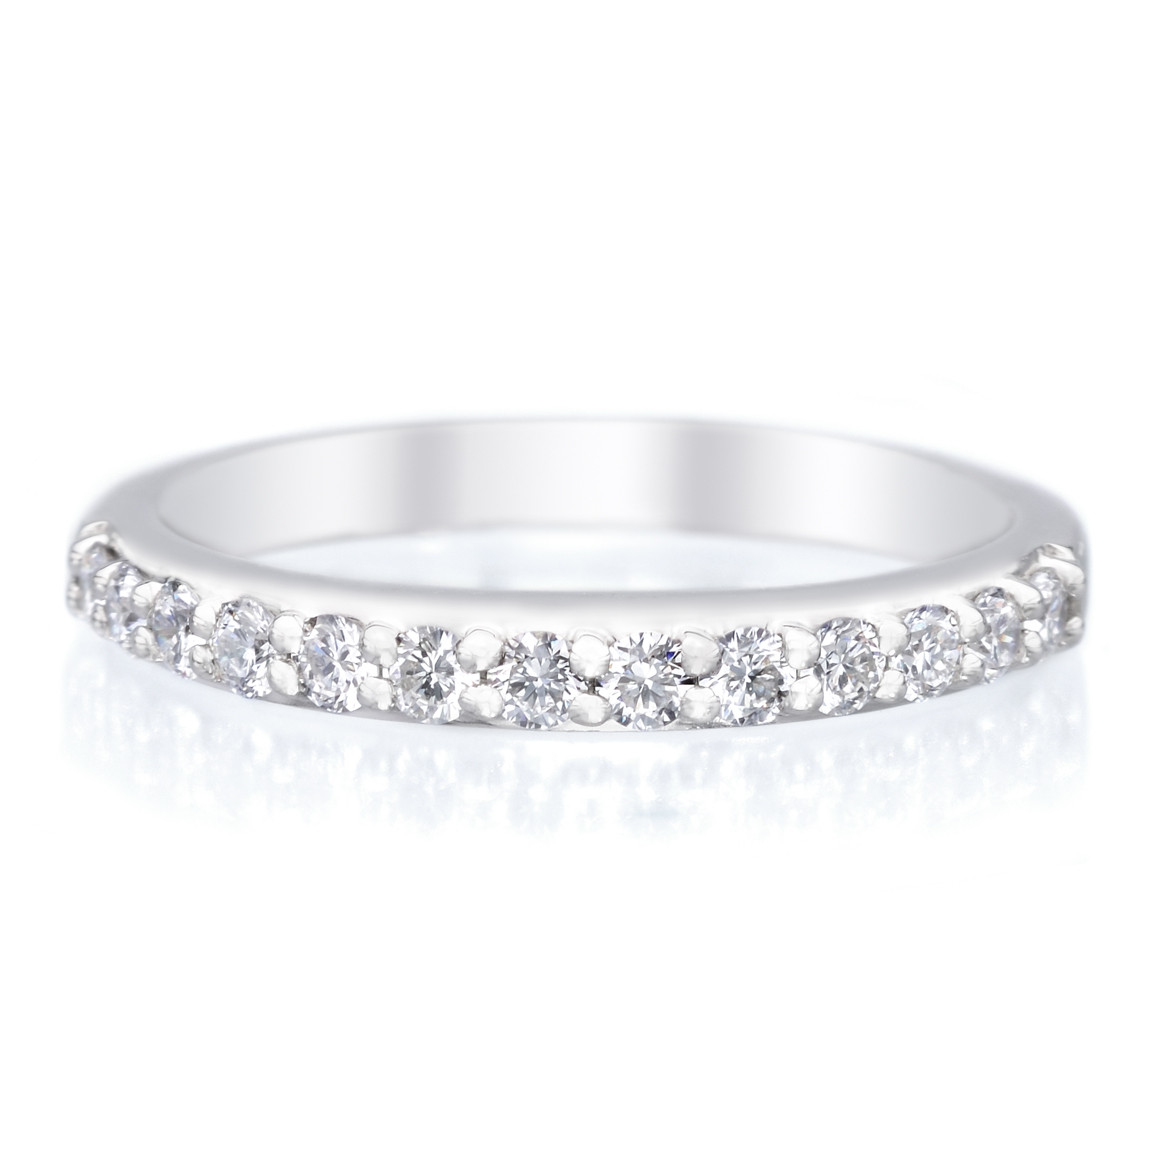 A. Jaffe Platium Shared Prong 13 Stone Diamond Band